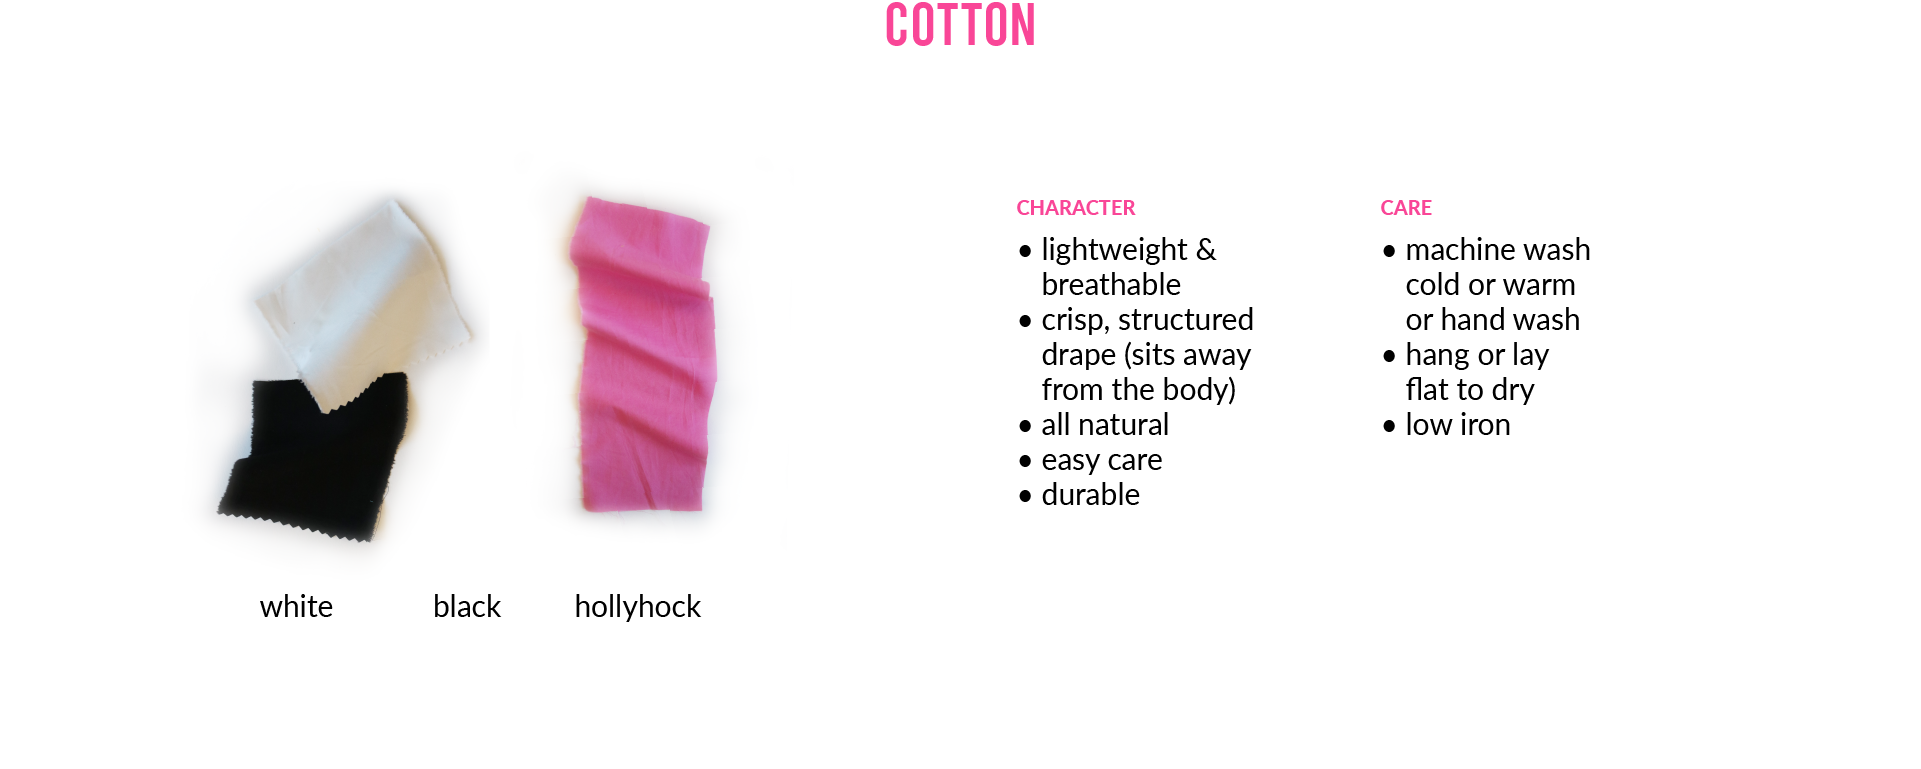 CottonCHARACTER • lightweight & breathable • crisp, structured drape (sits away from the body) • all natural • easy care • durableCARE • machine wash cold or warm or hand wash • hang or lay flat to dry • low iron